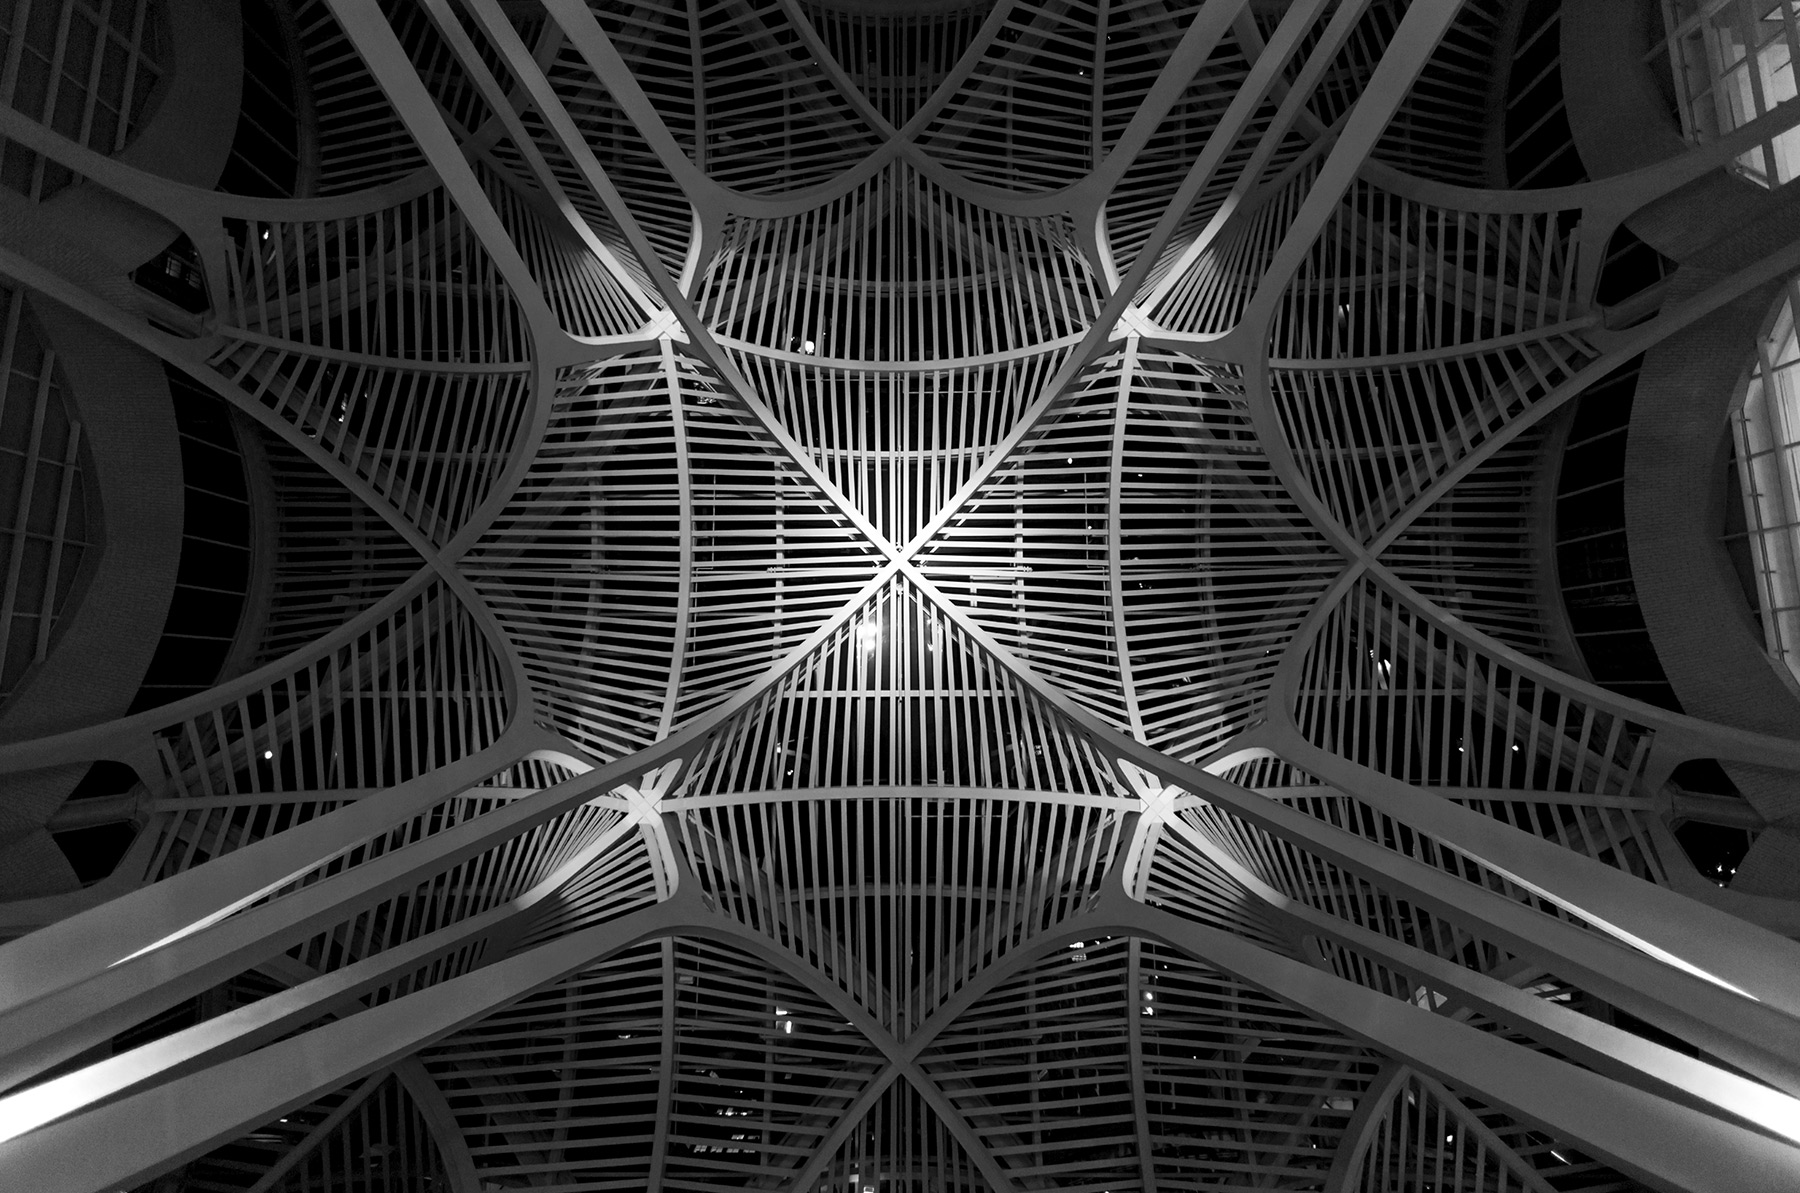 20150728. An intricate ceiling at Sam Pollock Square  in Toronto